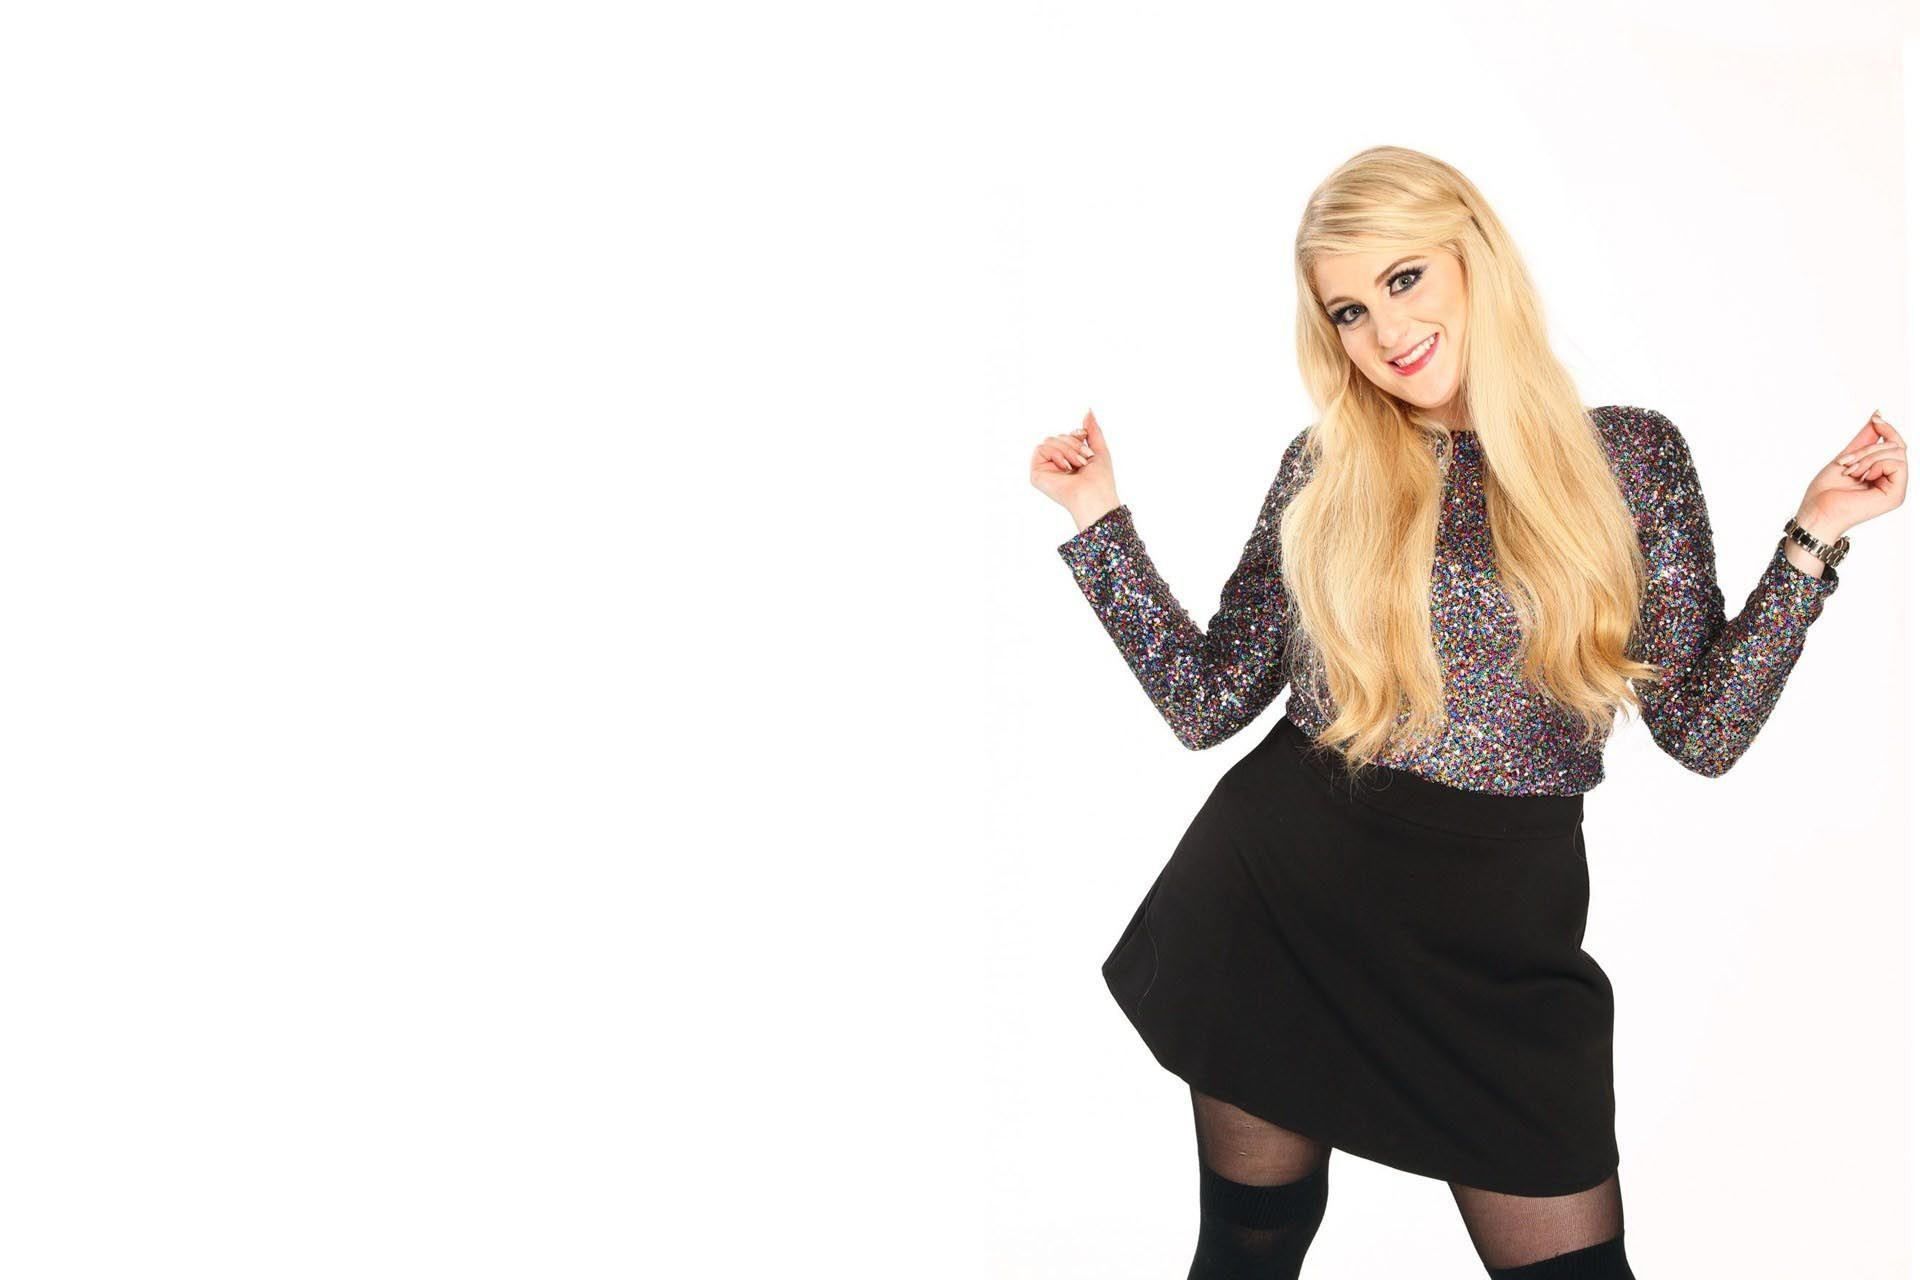 Meghan Trainor Wallpapers High Resolution and Quality Download